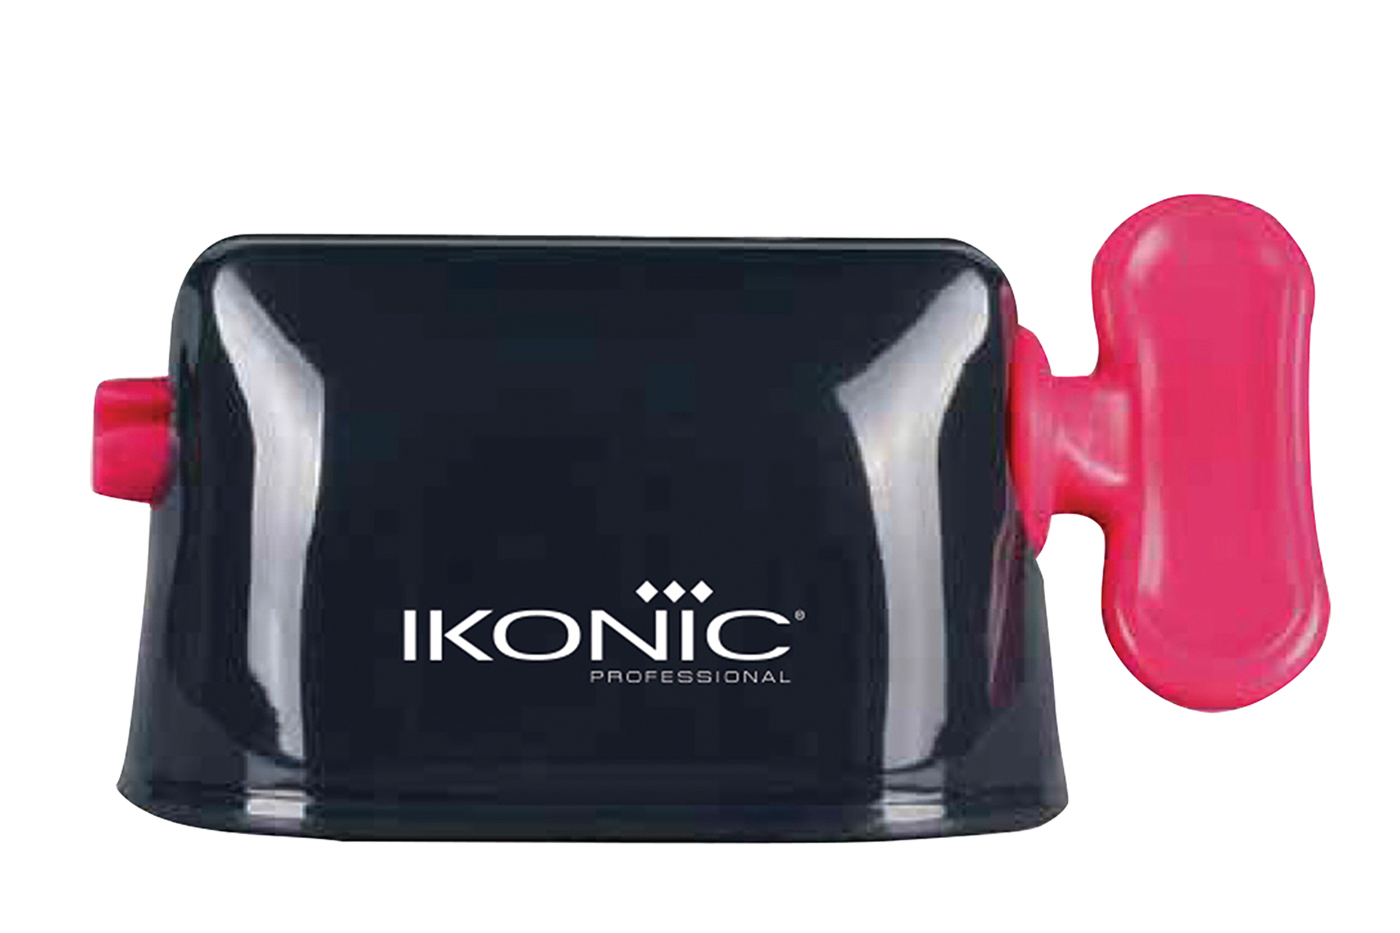 Ikonic's handy tube squeezer for hairdressers